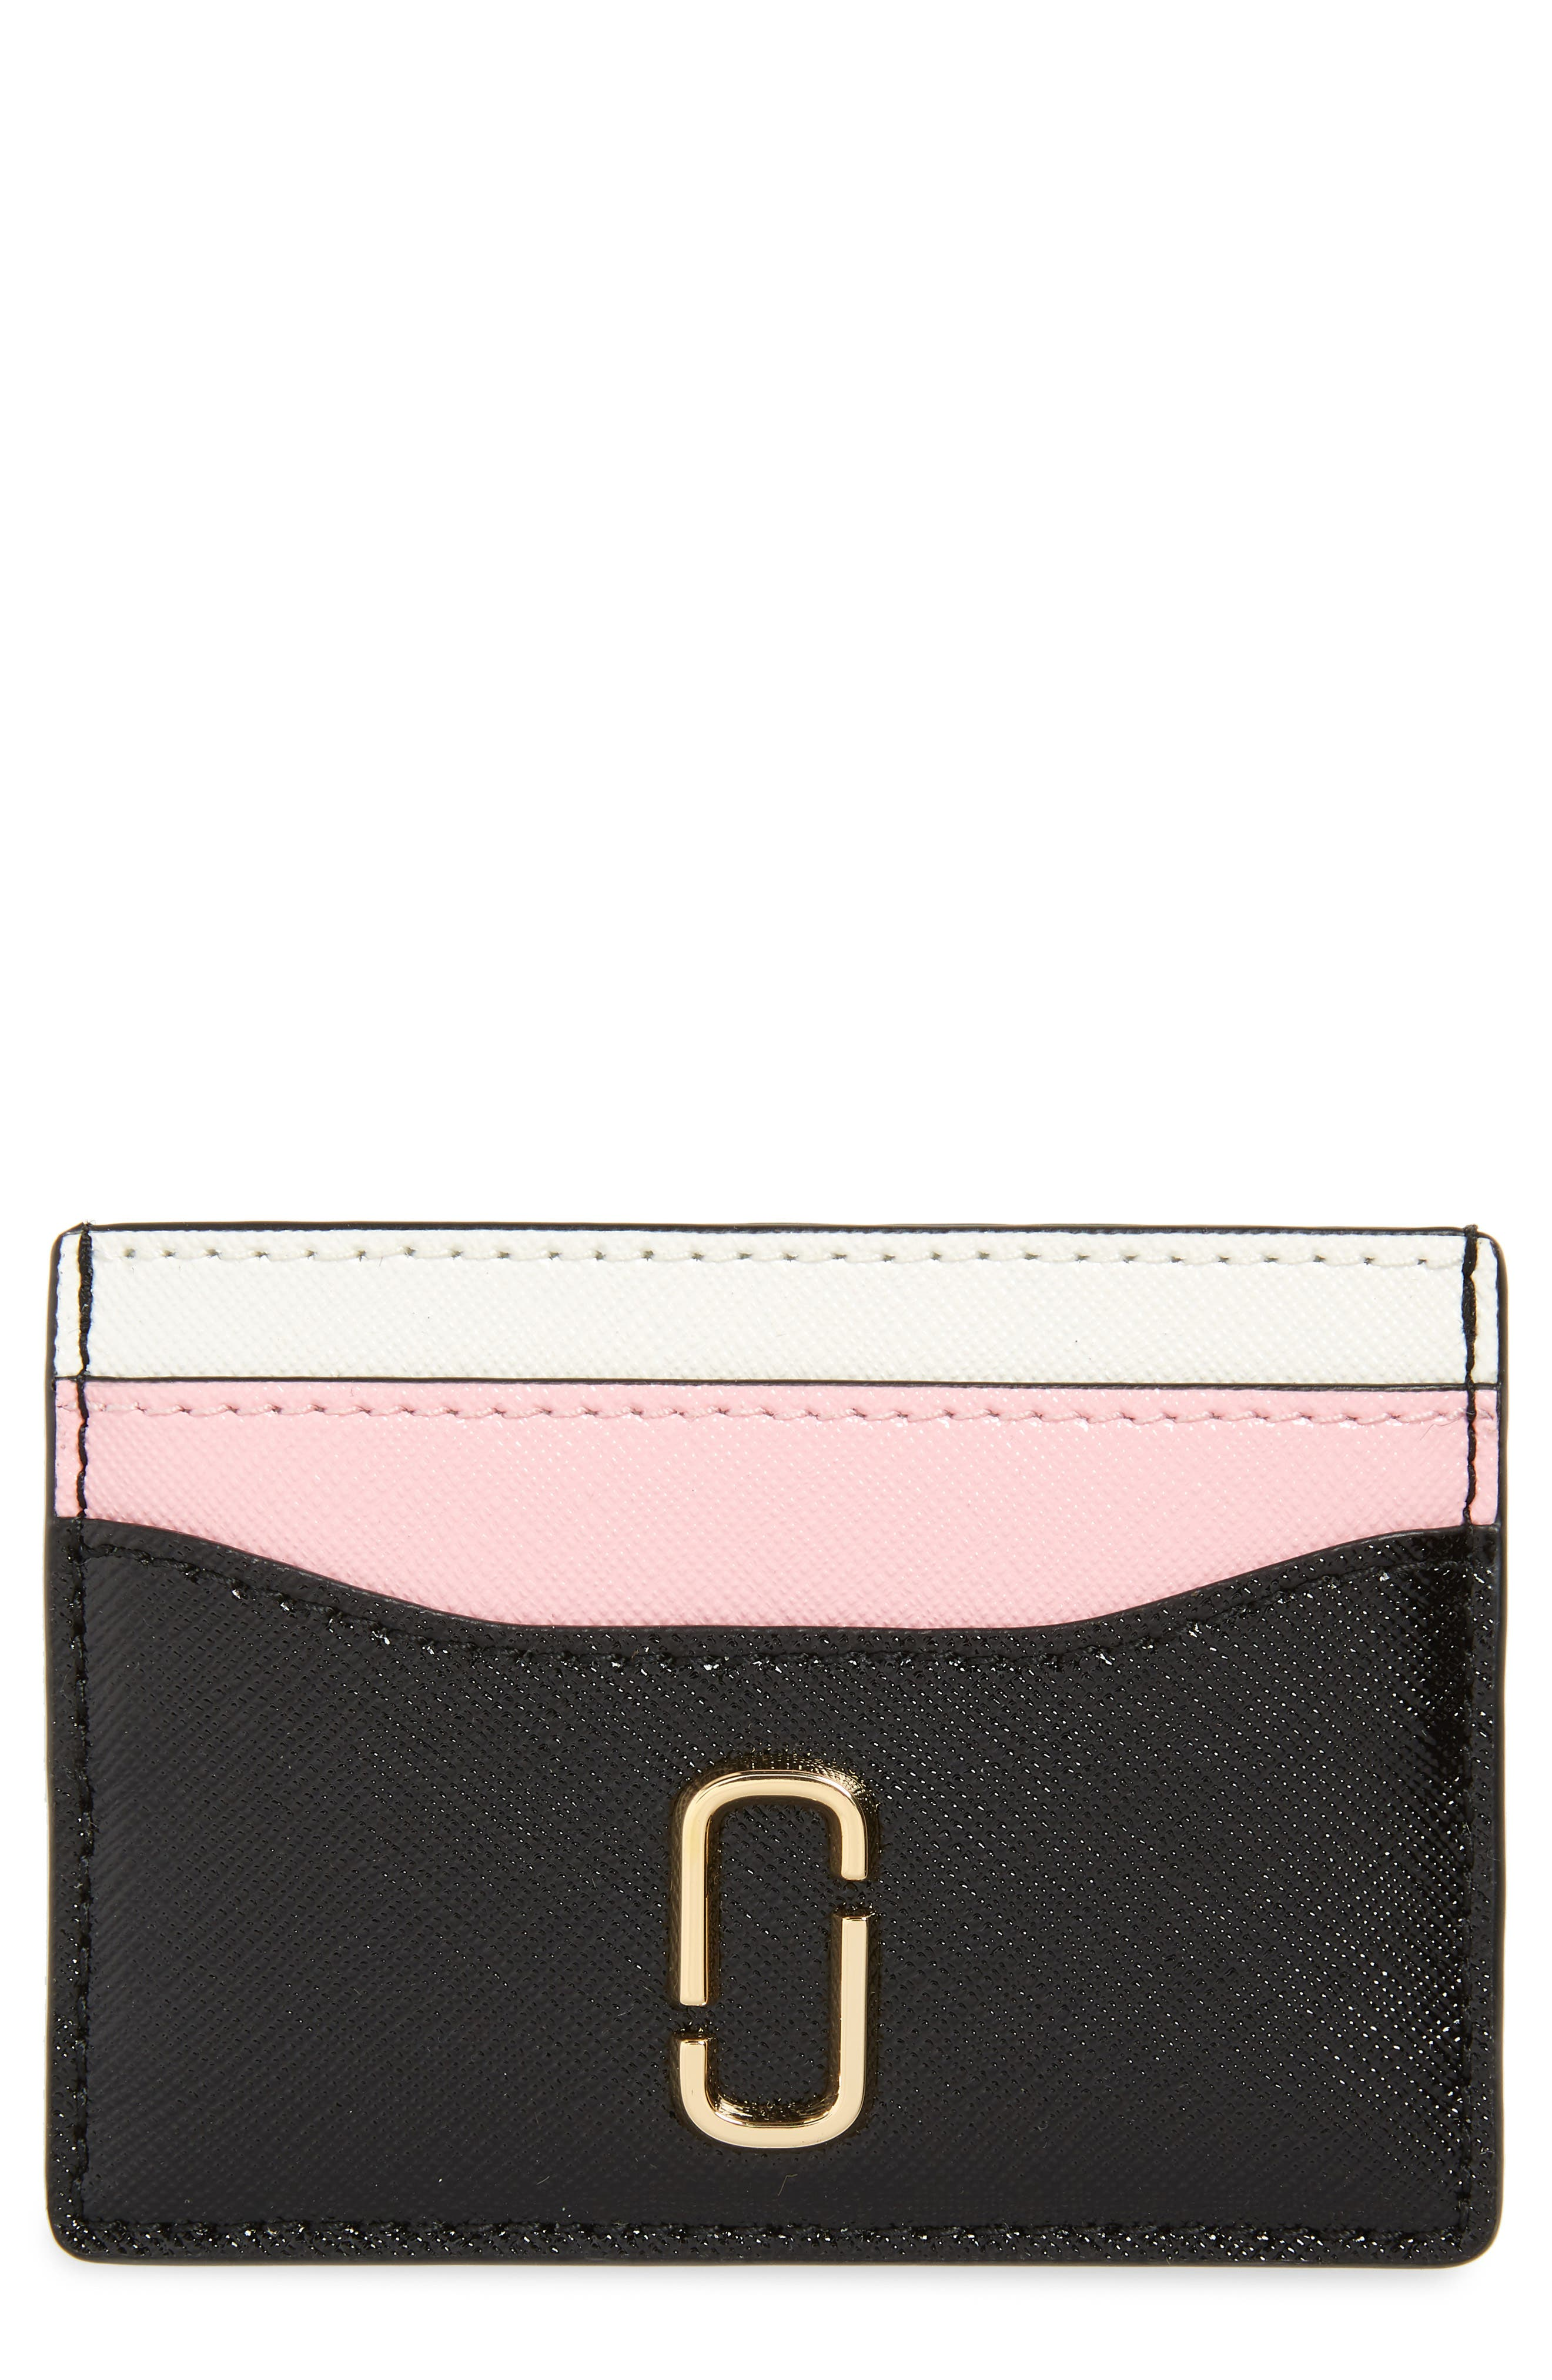 Snapshot Leather Card Case,                         Main,                         color, Black/ Baby Pink